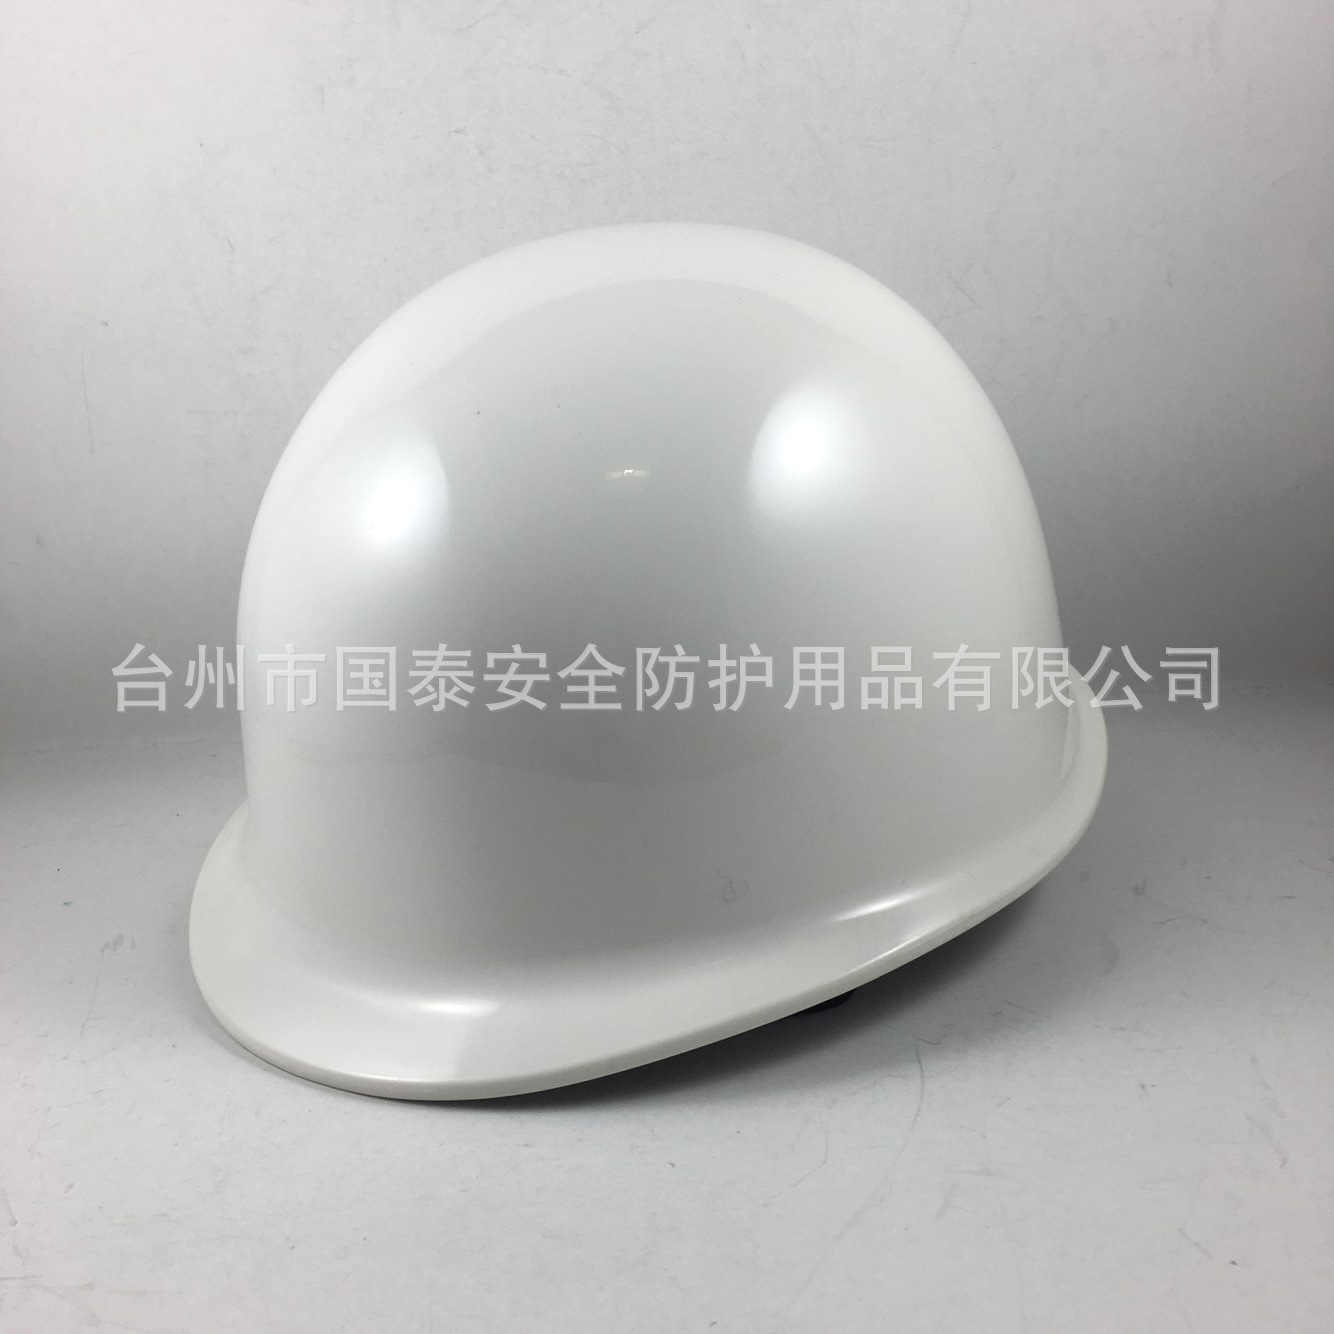 Genuine Product 9977 Protective Cap ABS Electrician Safety Helmet Sun Hat Customizable Work Site Printed Words